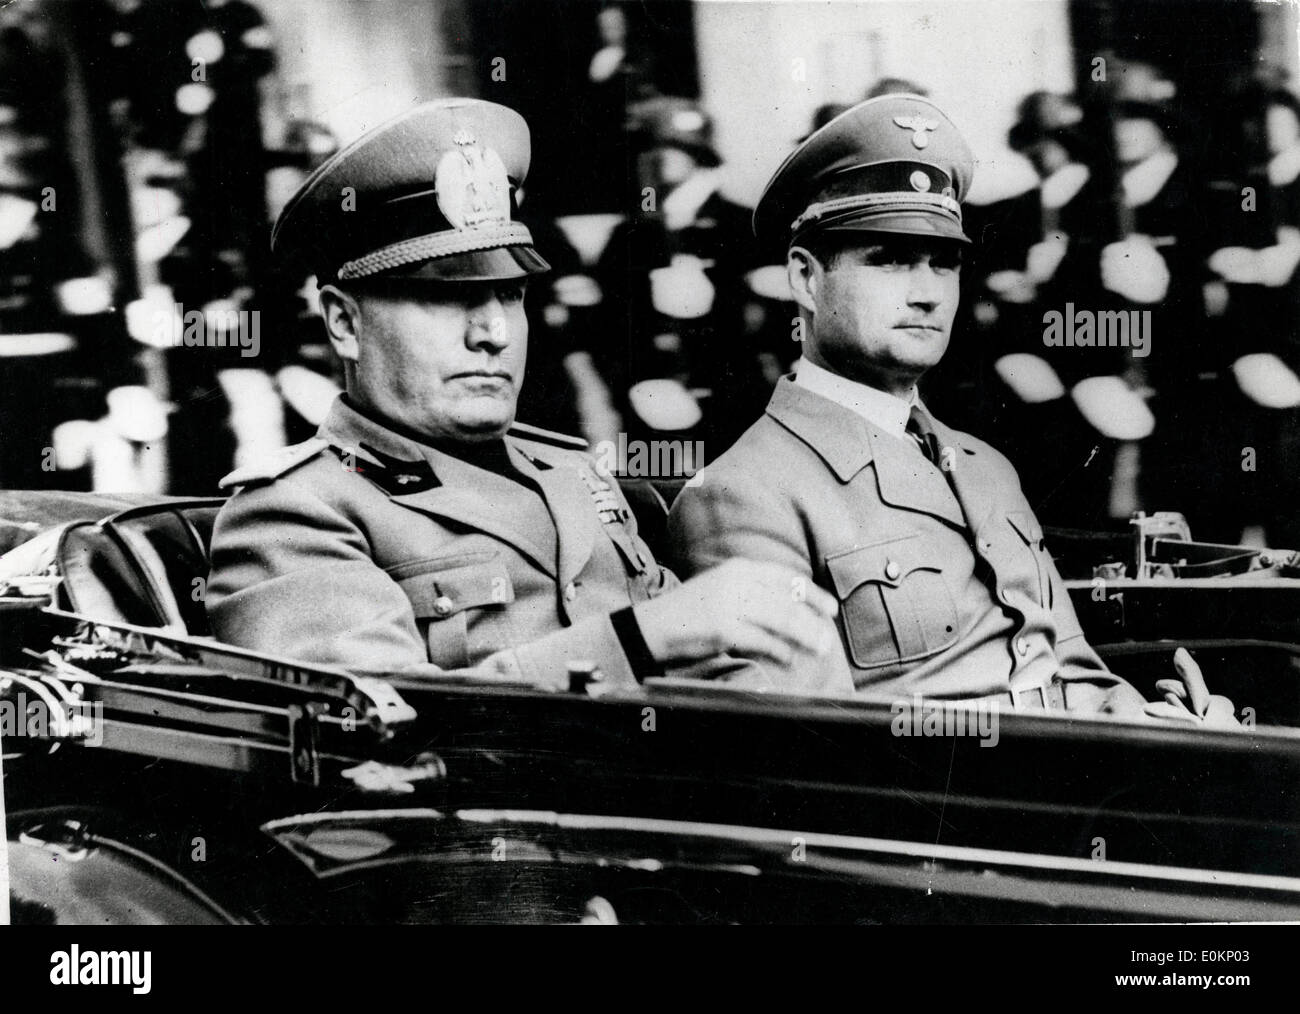 Benito Mussolini and Rudolf Hess in a car Stock Photo